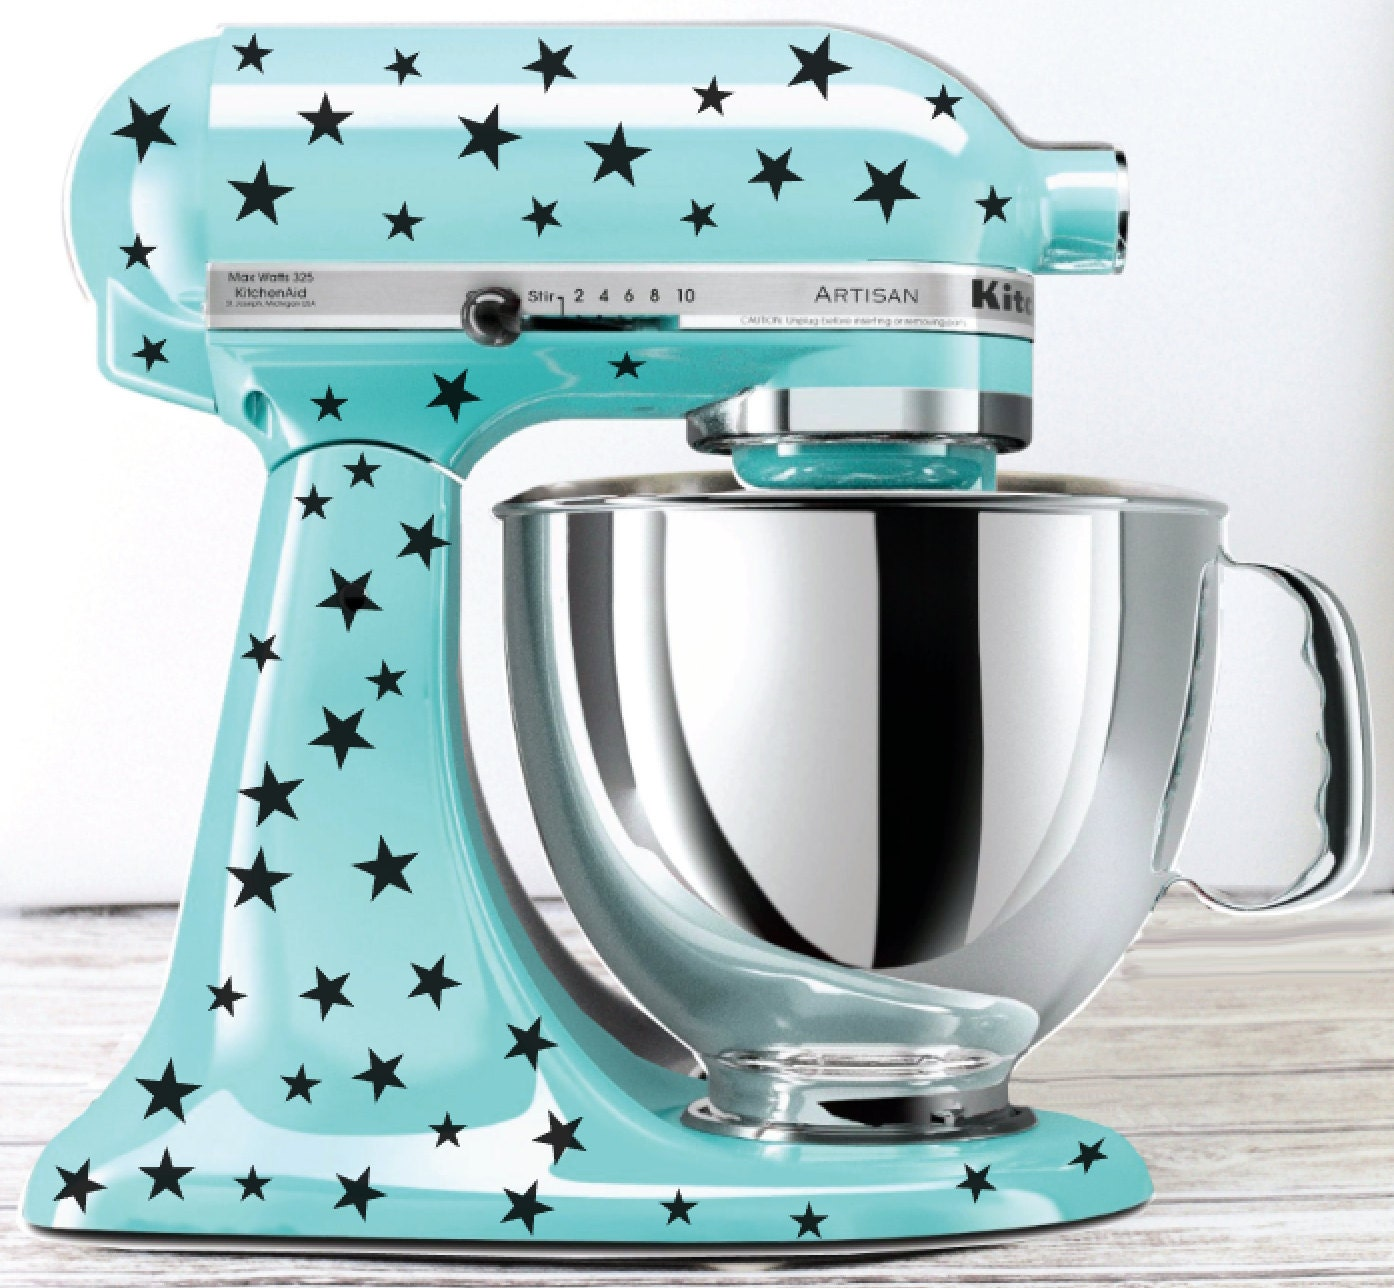 Star Kitchen Mixer Decals Mixer Stickers to be used on